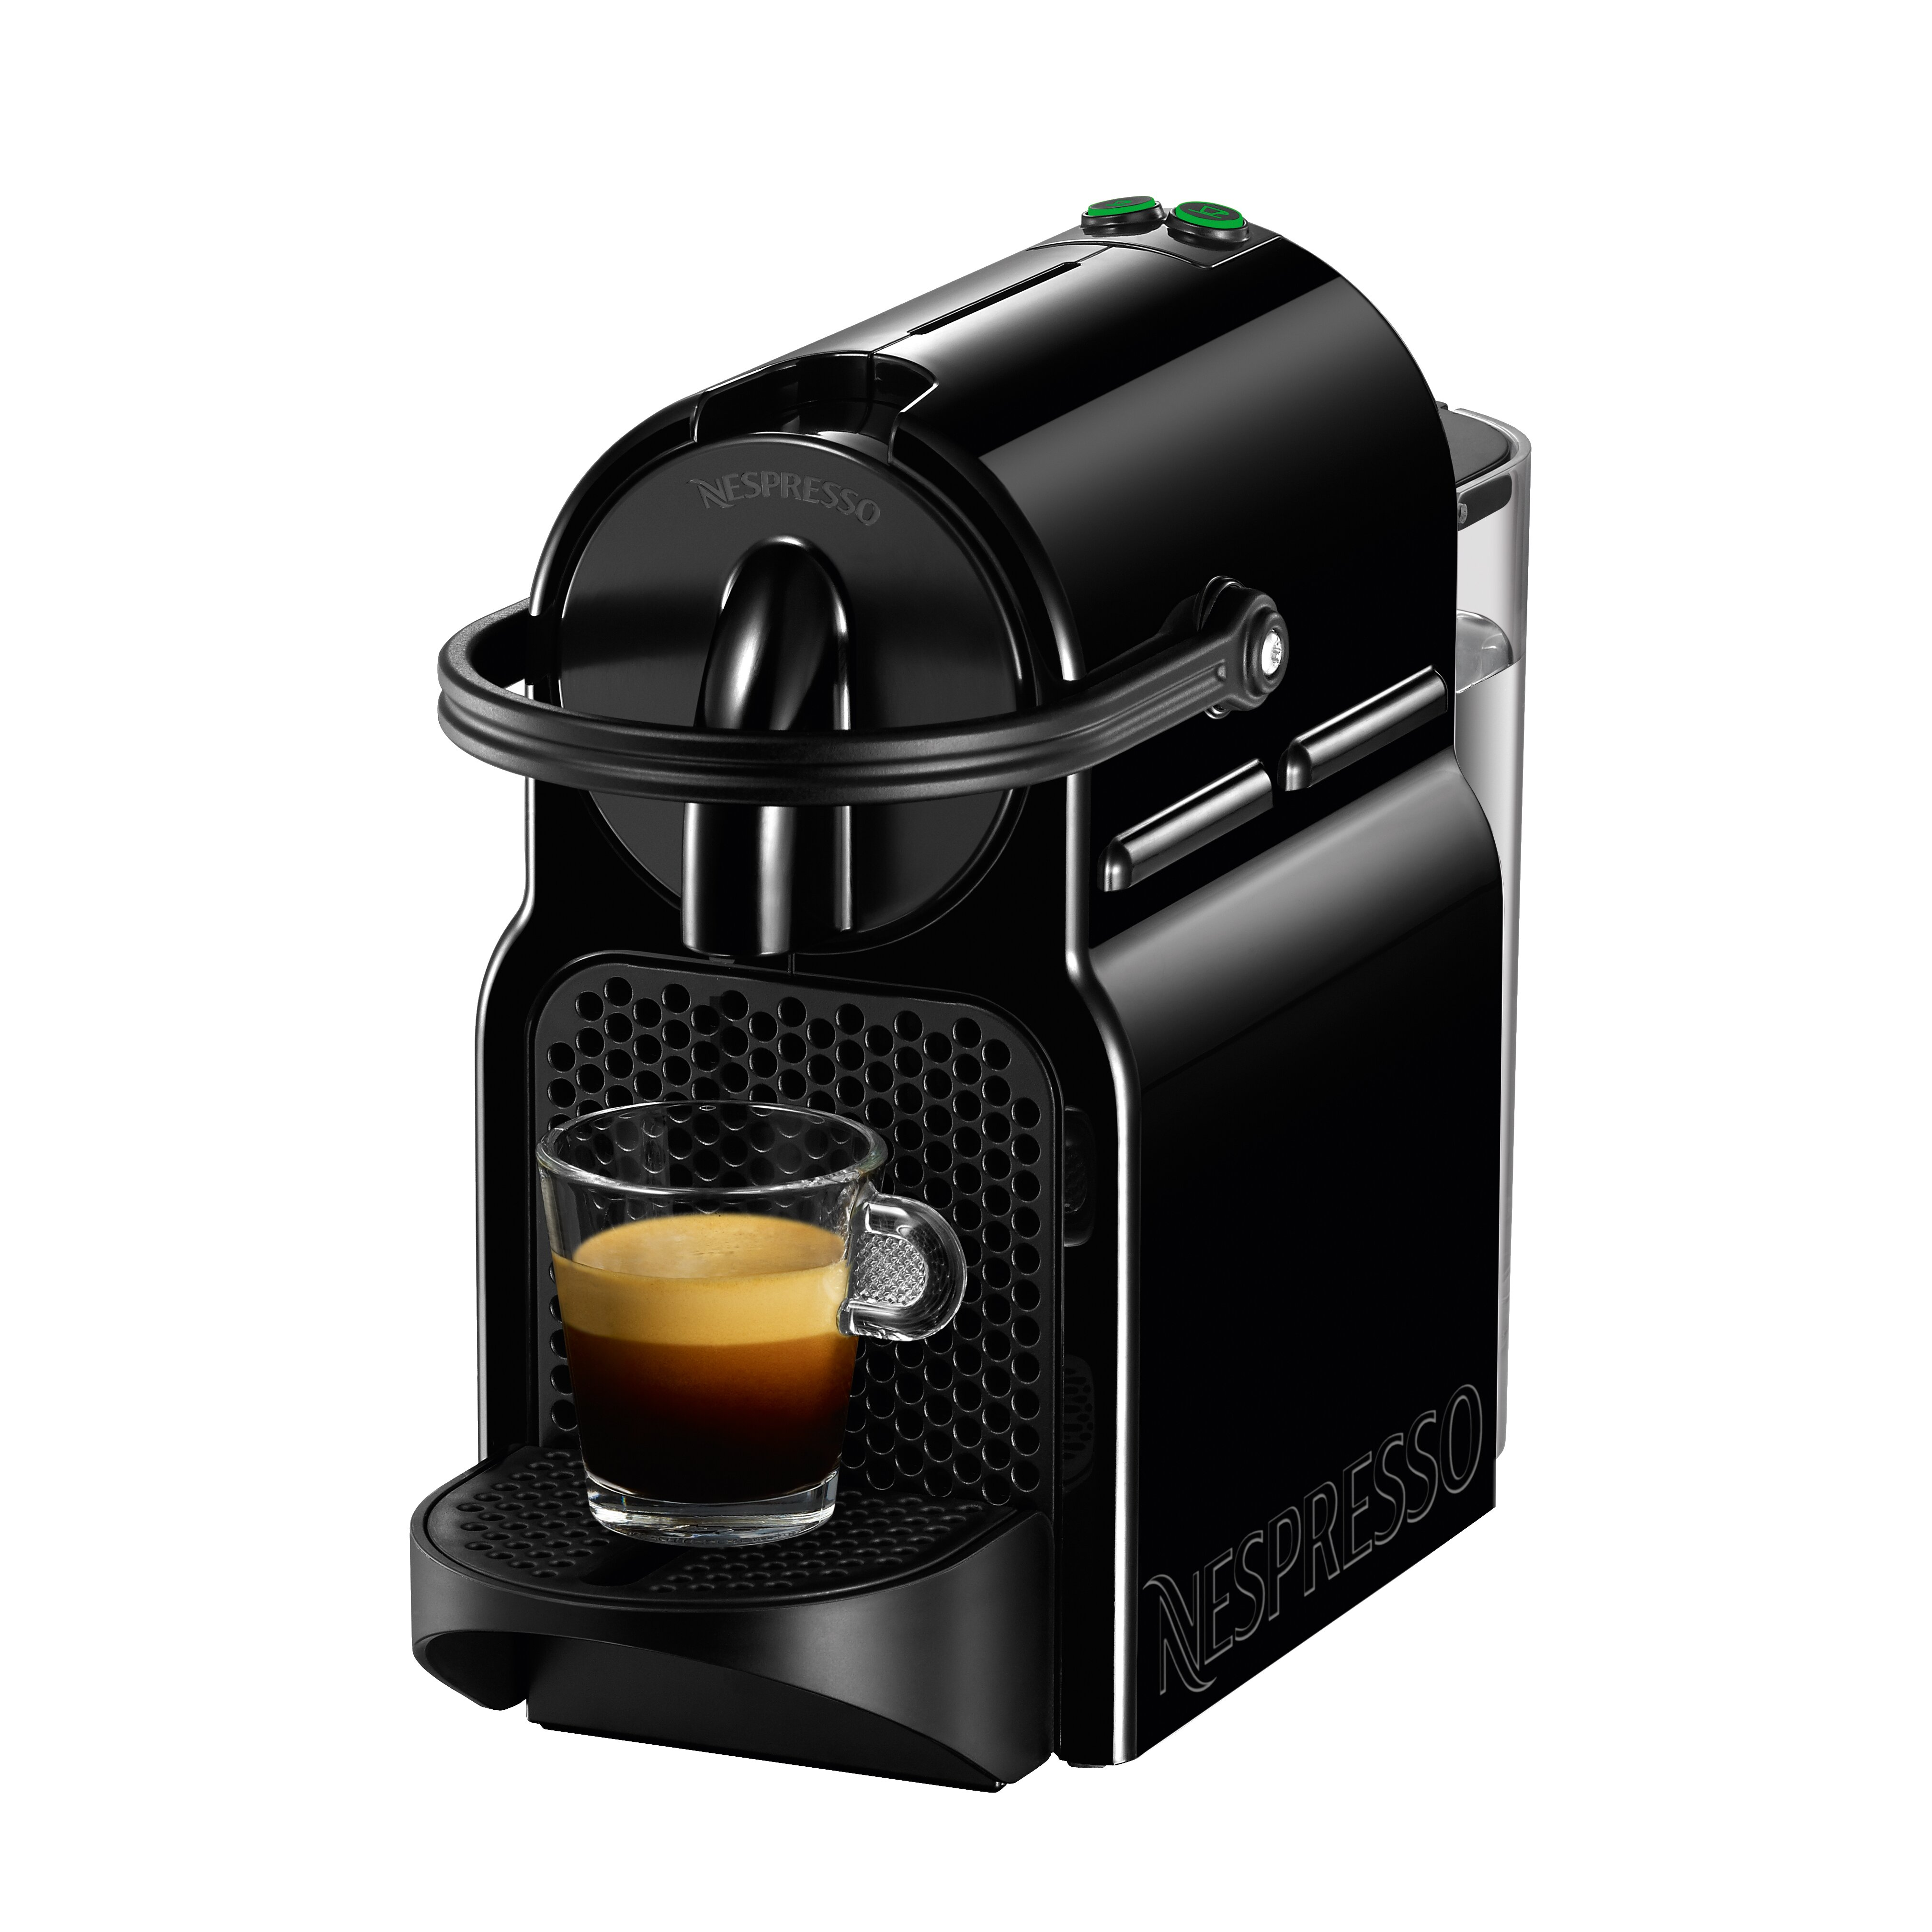 nespresso inissia espresso maker with aeroccino milk. Black Bedroom Furniture Sets. Home Design Ideas